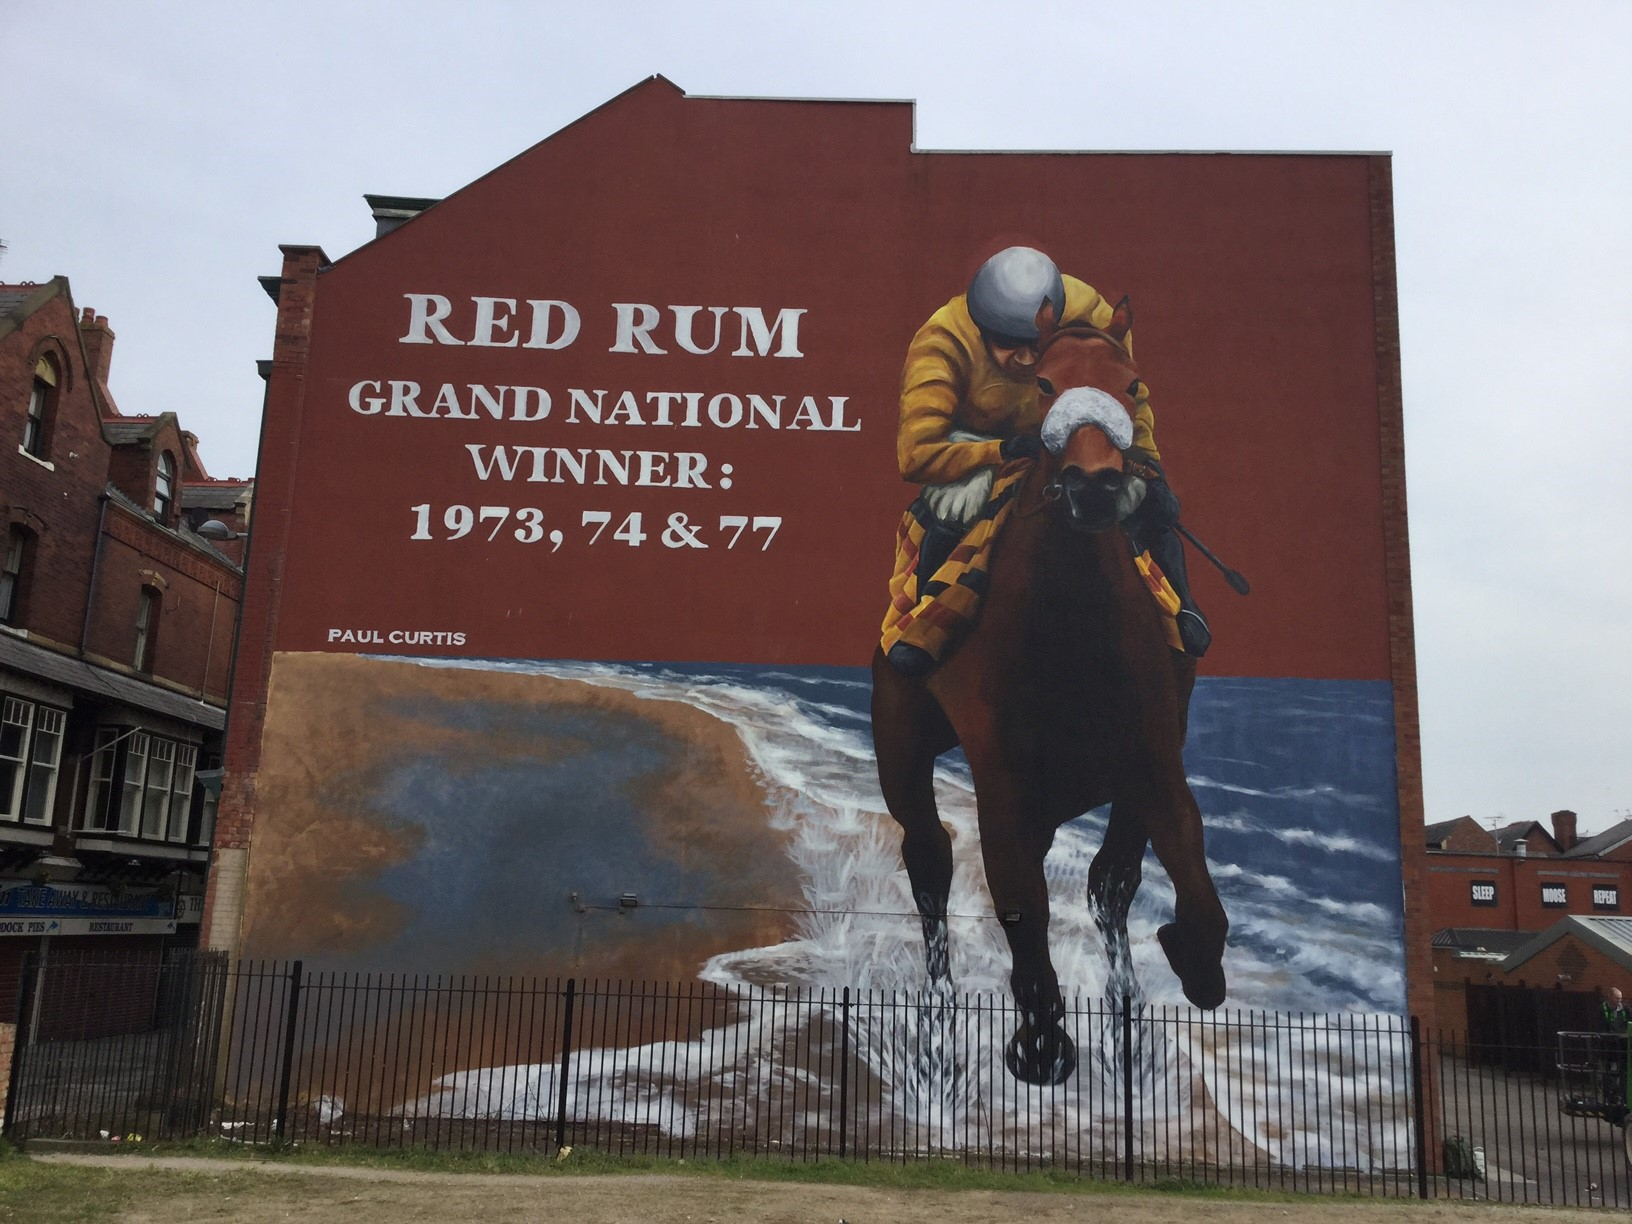 Liverpool mural artist Paul Curtis and the huge Red Rum artwork in Southport